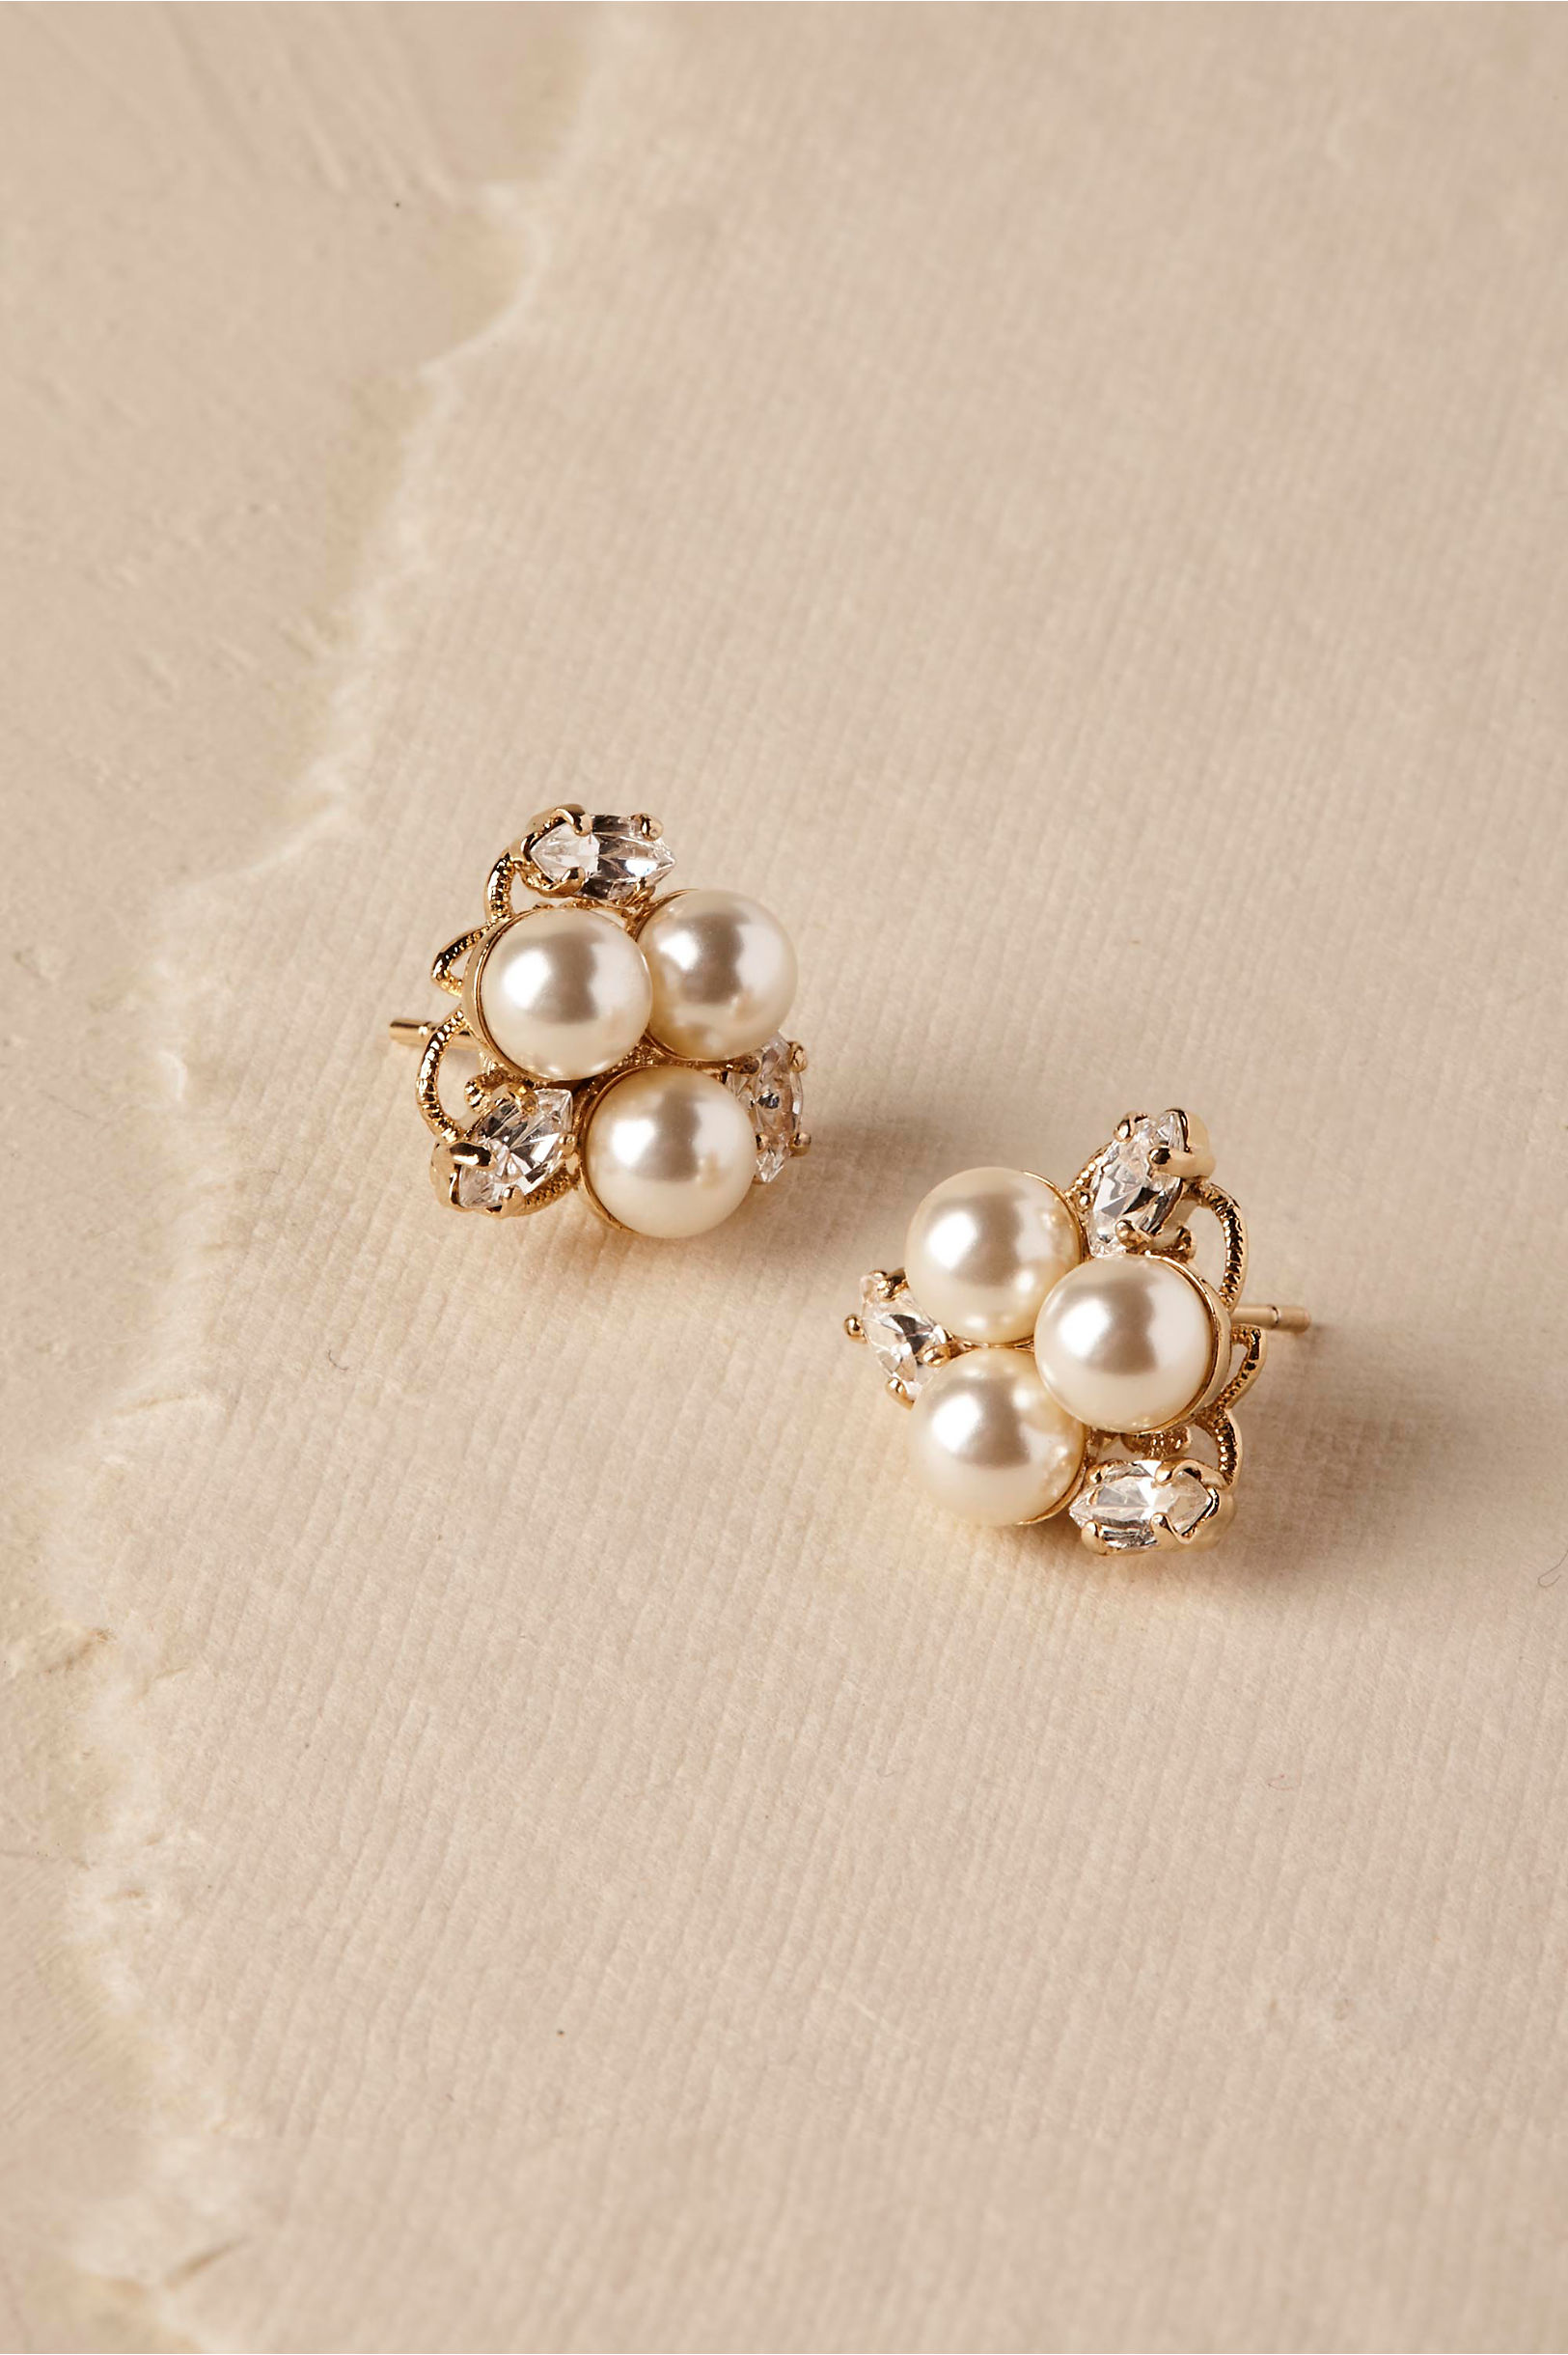 earrings stud fashion pearl chanel product sofi img store inspired jewellery